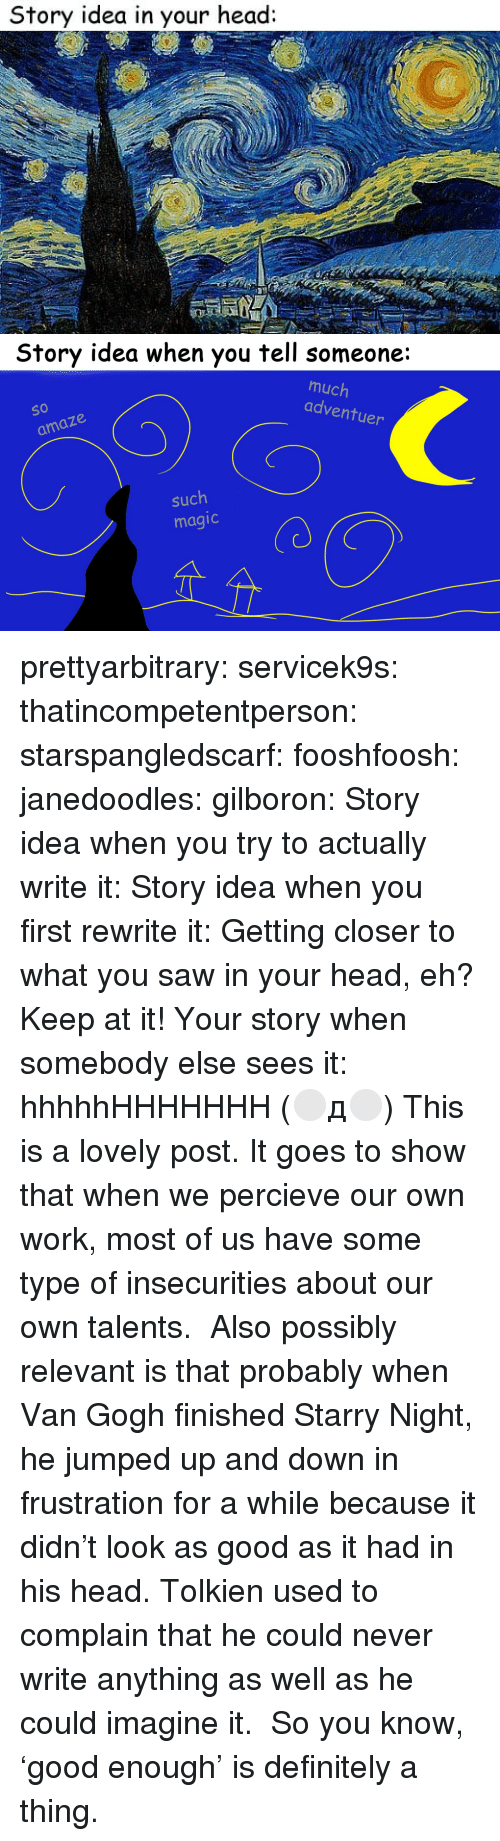 amaze: Story idea in your head:   Story idea when you tell someone:  much  adventu  So  O 10  er  amaze  such  magic prettyarbitrary: servicek9s:  thatincompetentperson:  starspangledscarf:  fooshfoosh:  janedoodles:  gilboron:  Story idea when you try to actually write it:  Story idea when you first rewrite it:  Getting closer to what you saw in your head, eh? Keep at it!  Your story when somebody else sees it:      hhhhhHHHHHHH  (⚪д⚪)  This is a lovely post. It goes to show that when we percieve our own work, most of us have some type of insecurities about our own talents.   Also possibly relevant is that probably when Van Gogh finished Starry Night, he jumped up and down in frustration for a while because it didn't look as good as it had in his head. Tolkien used to complain that he could never write anything as well as he could imagine it.  So you know, 'good enough' is definitely a thing.